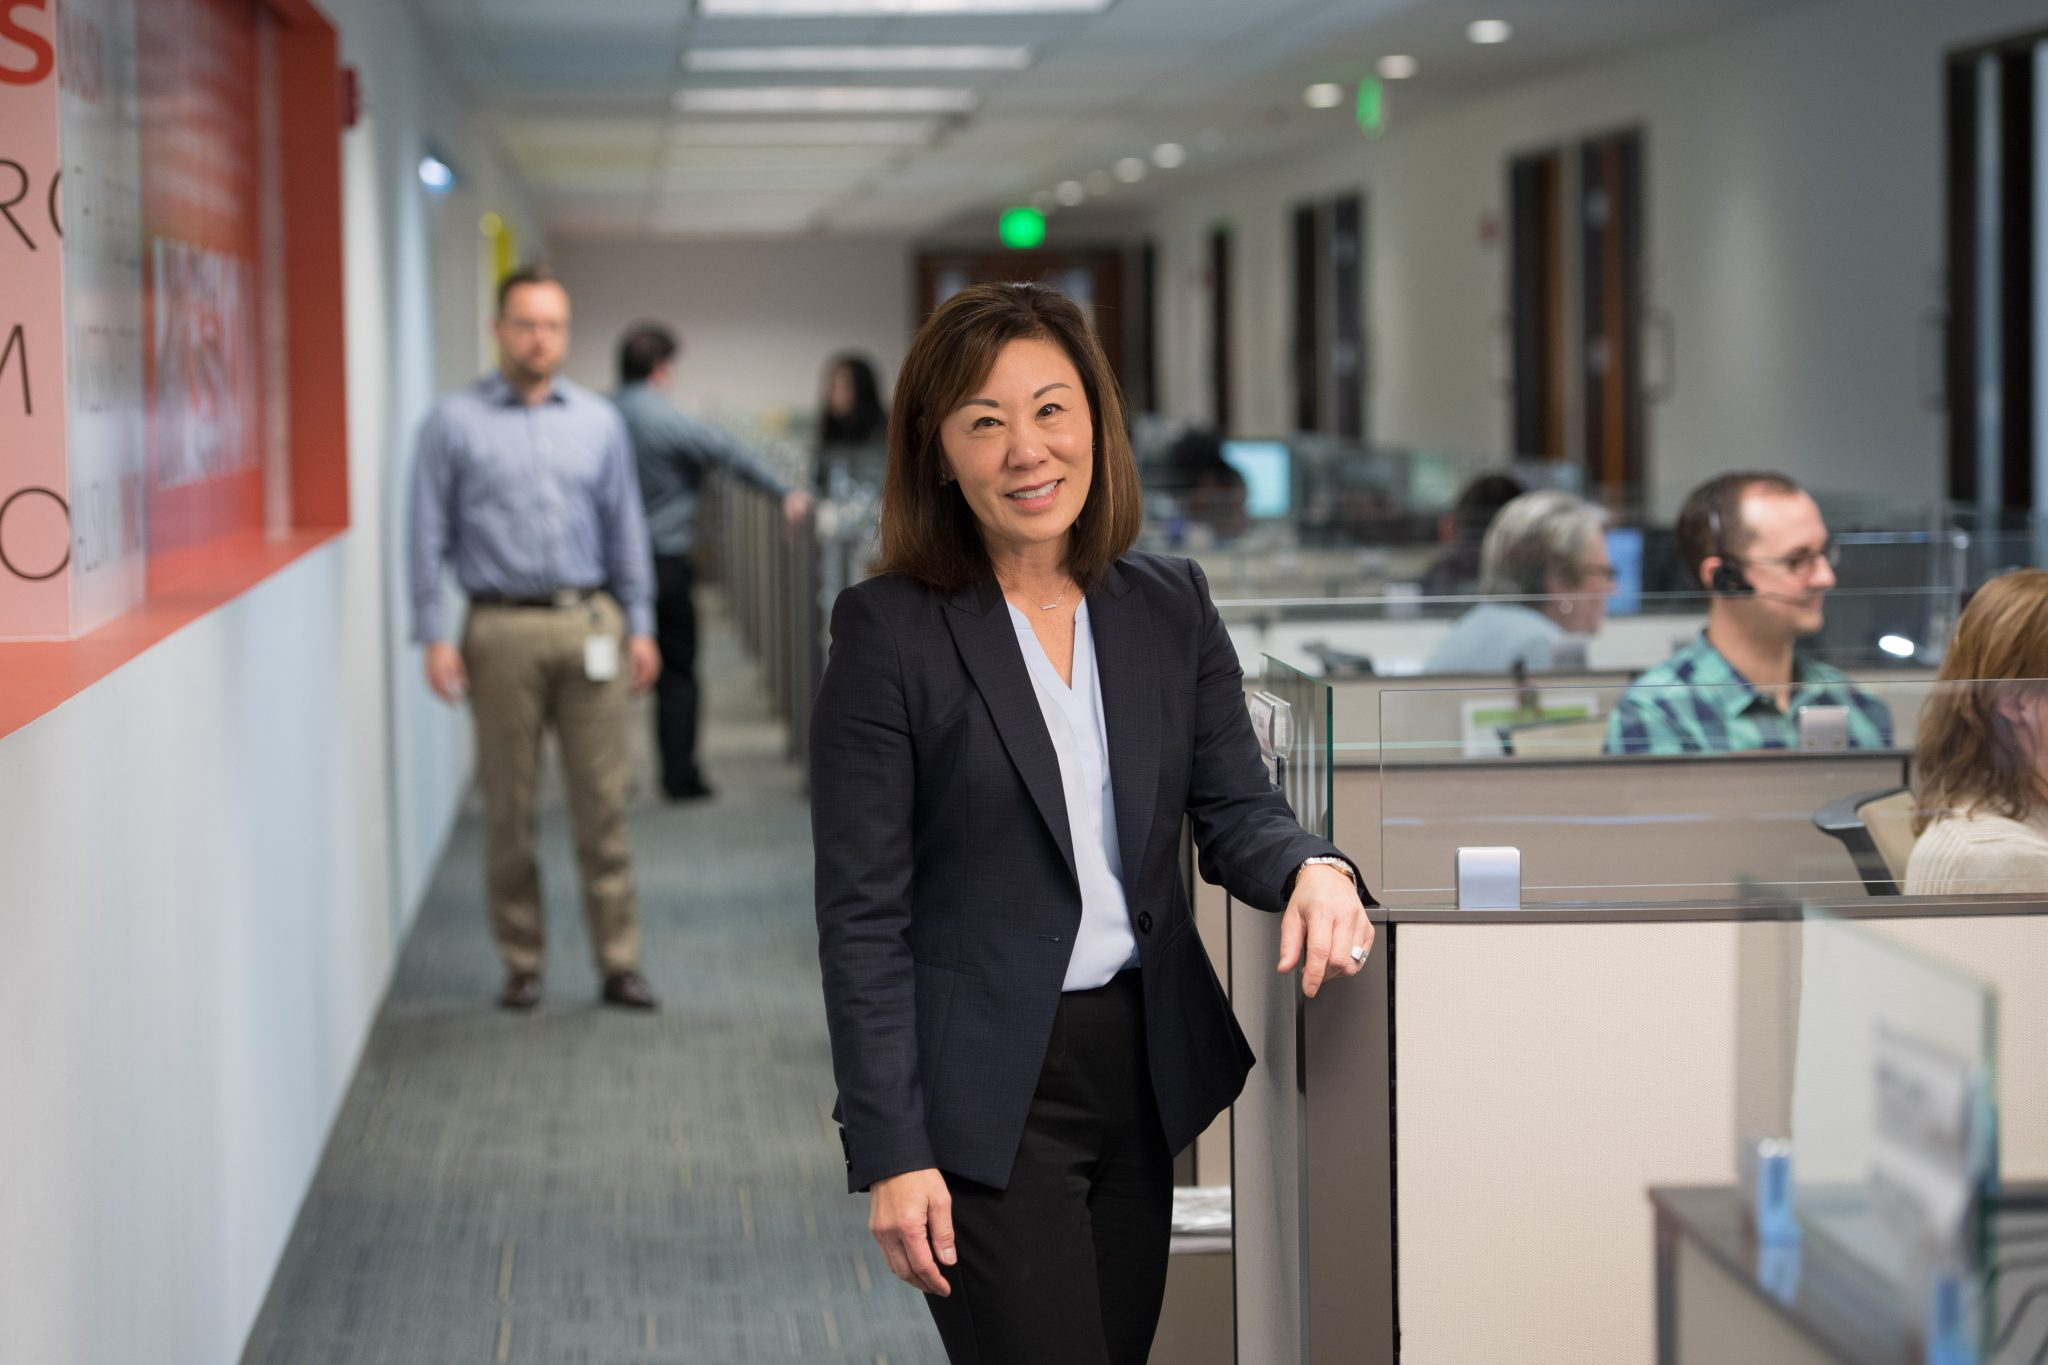 Becky Takeda-Tinker stands in office setting